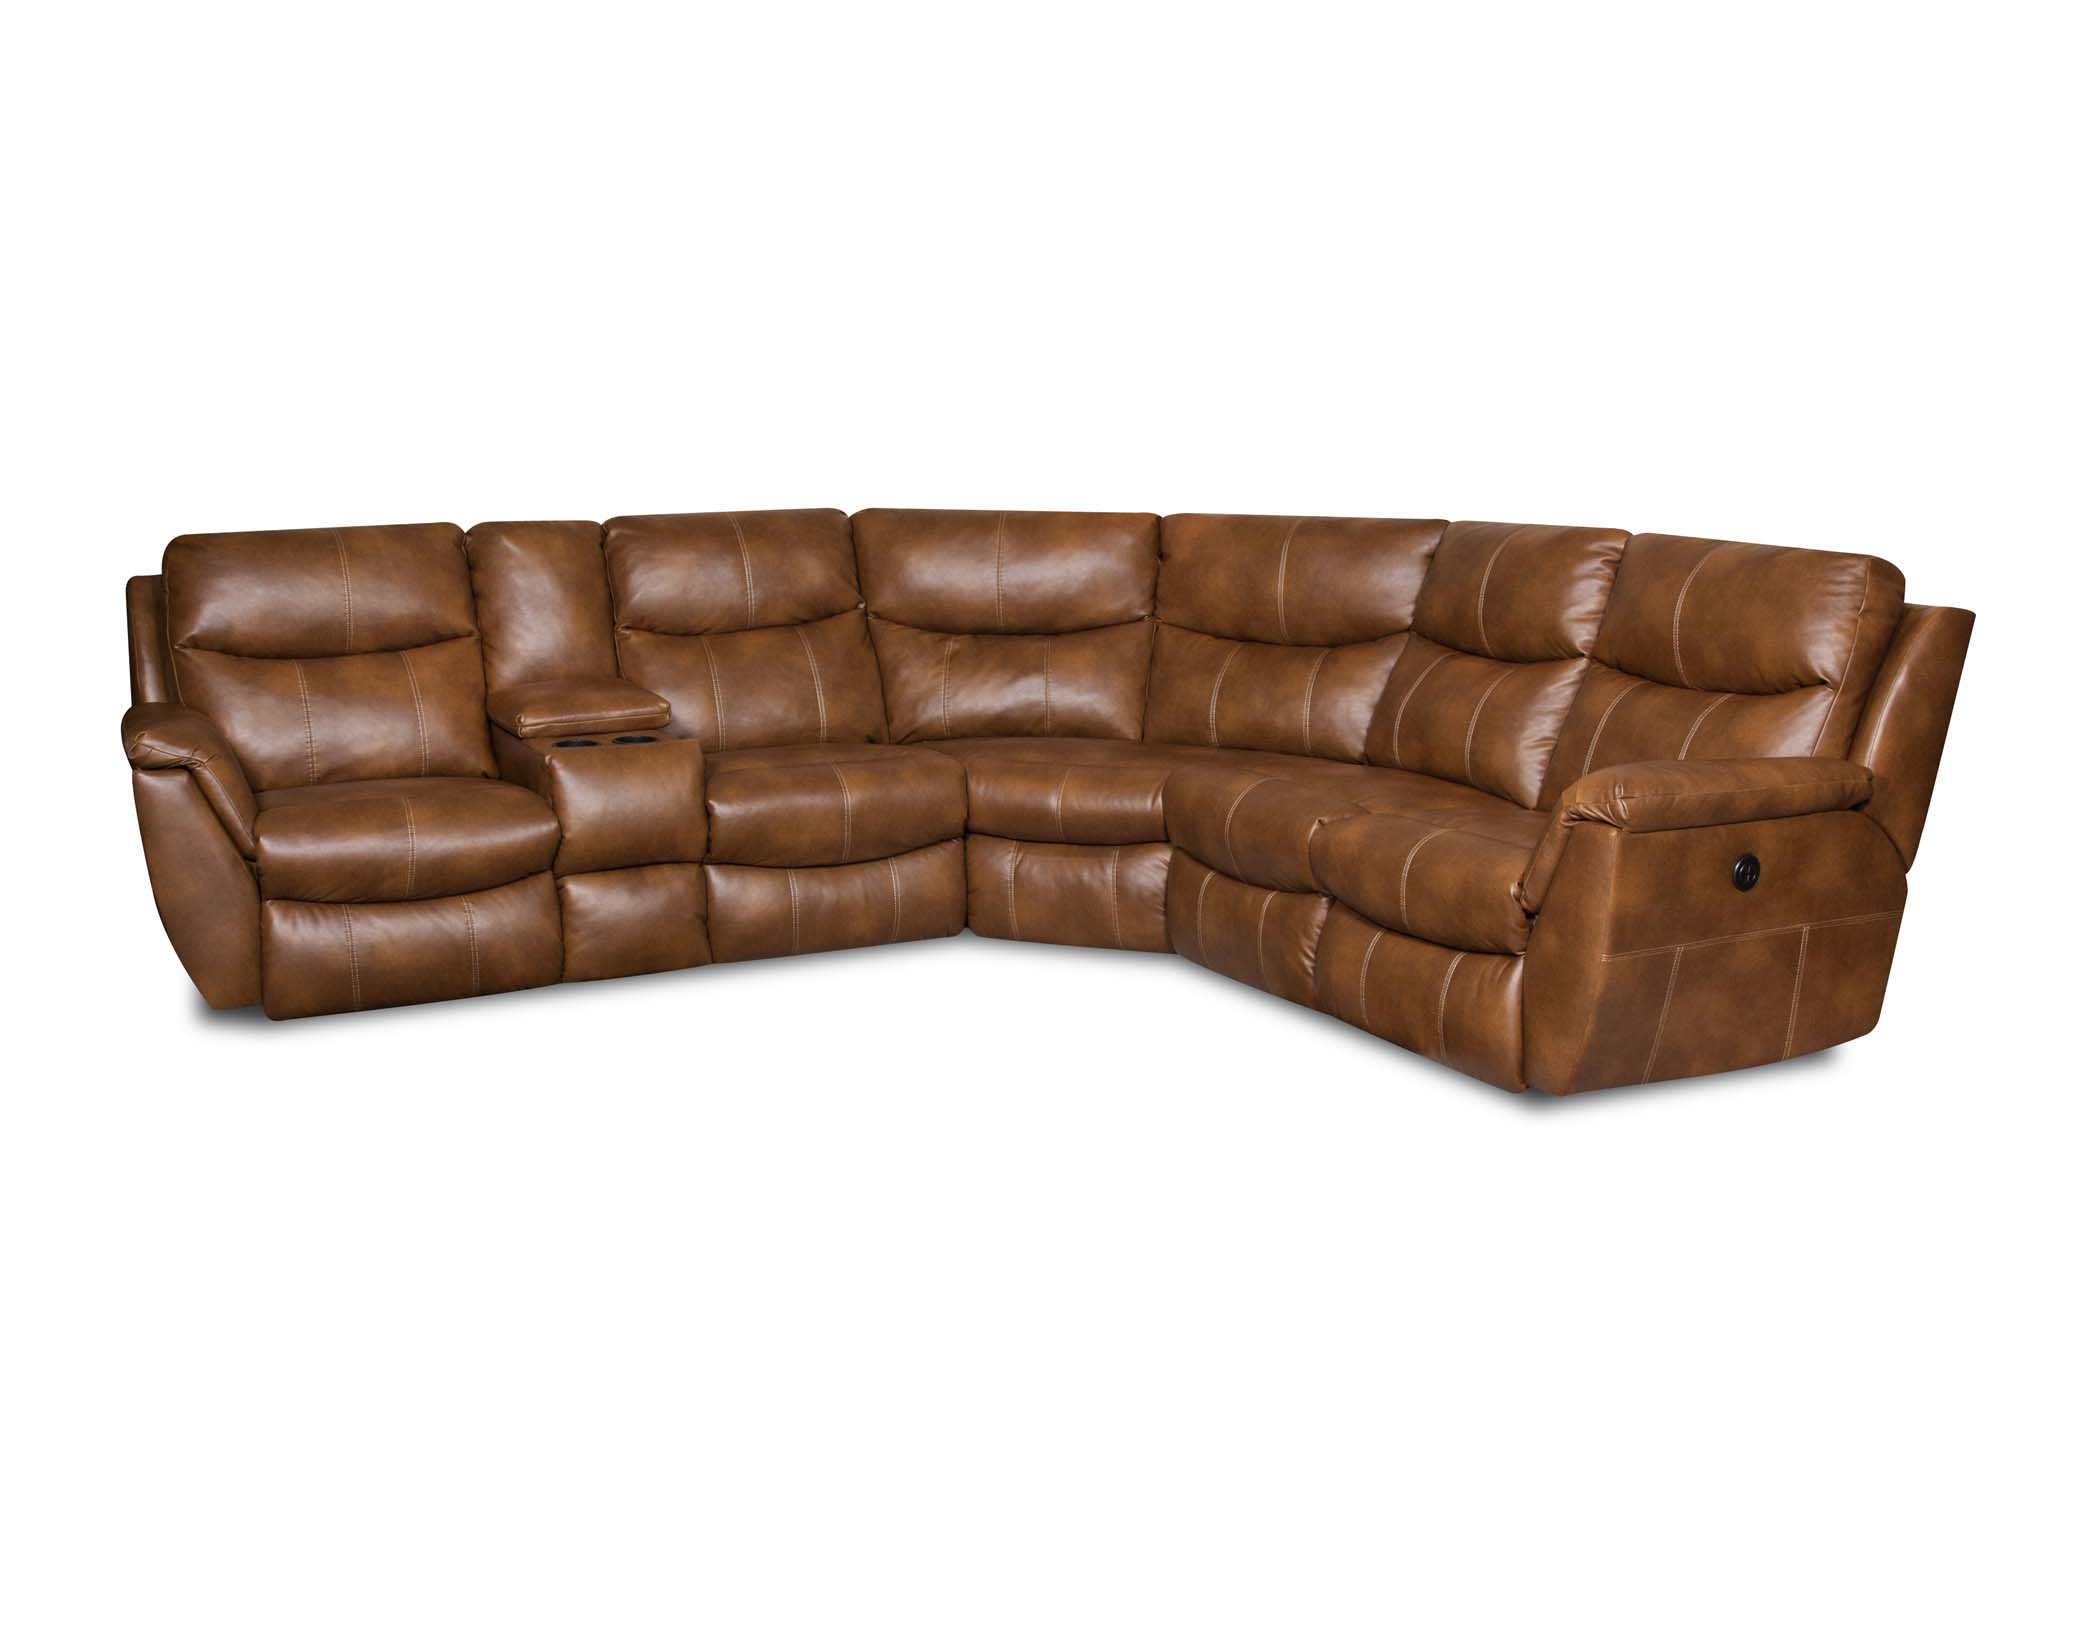 southern motion monaco bravo cognac sectional - Southern Motion Furniture